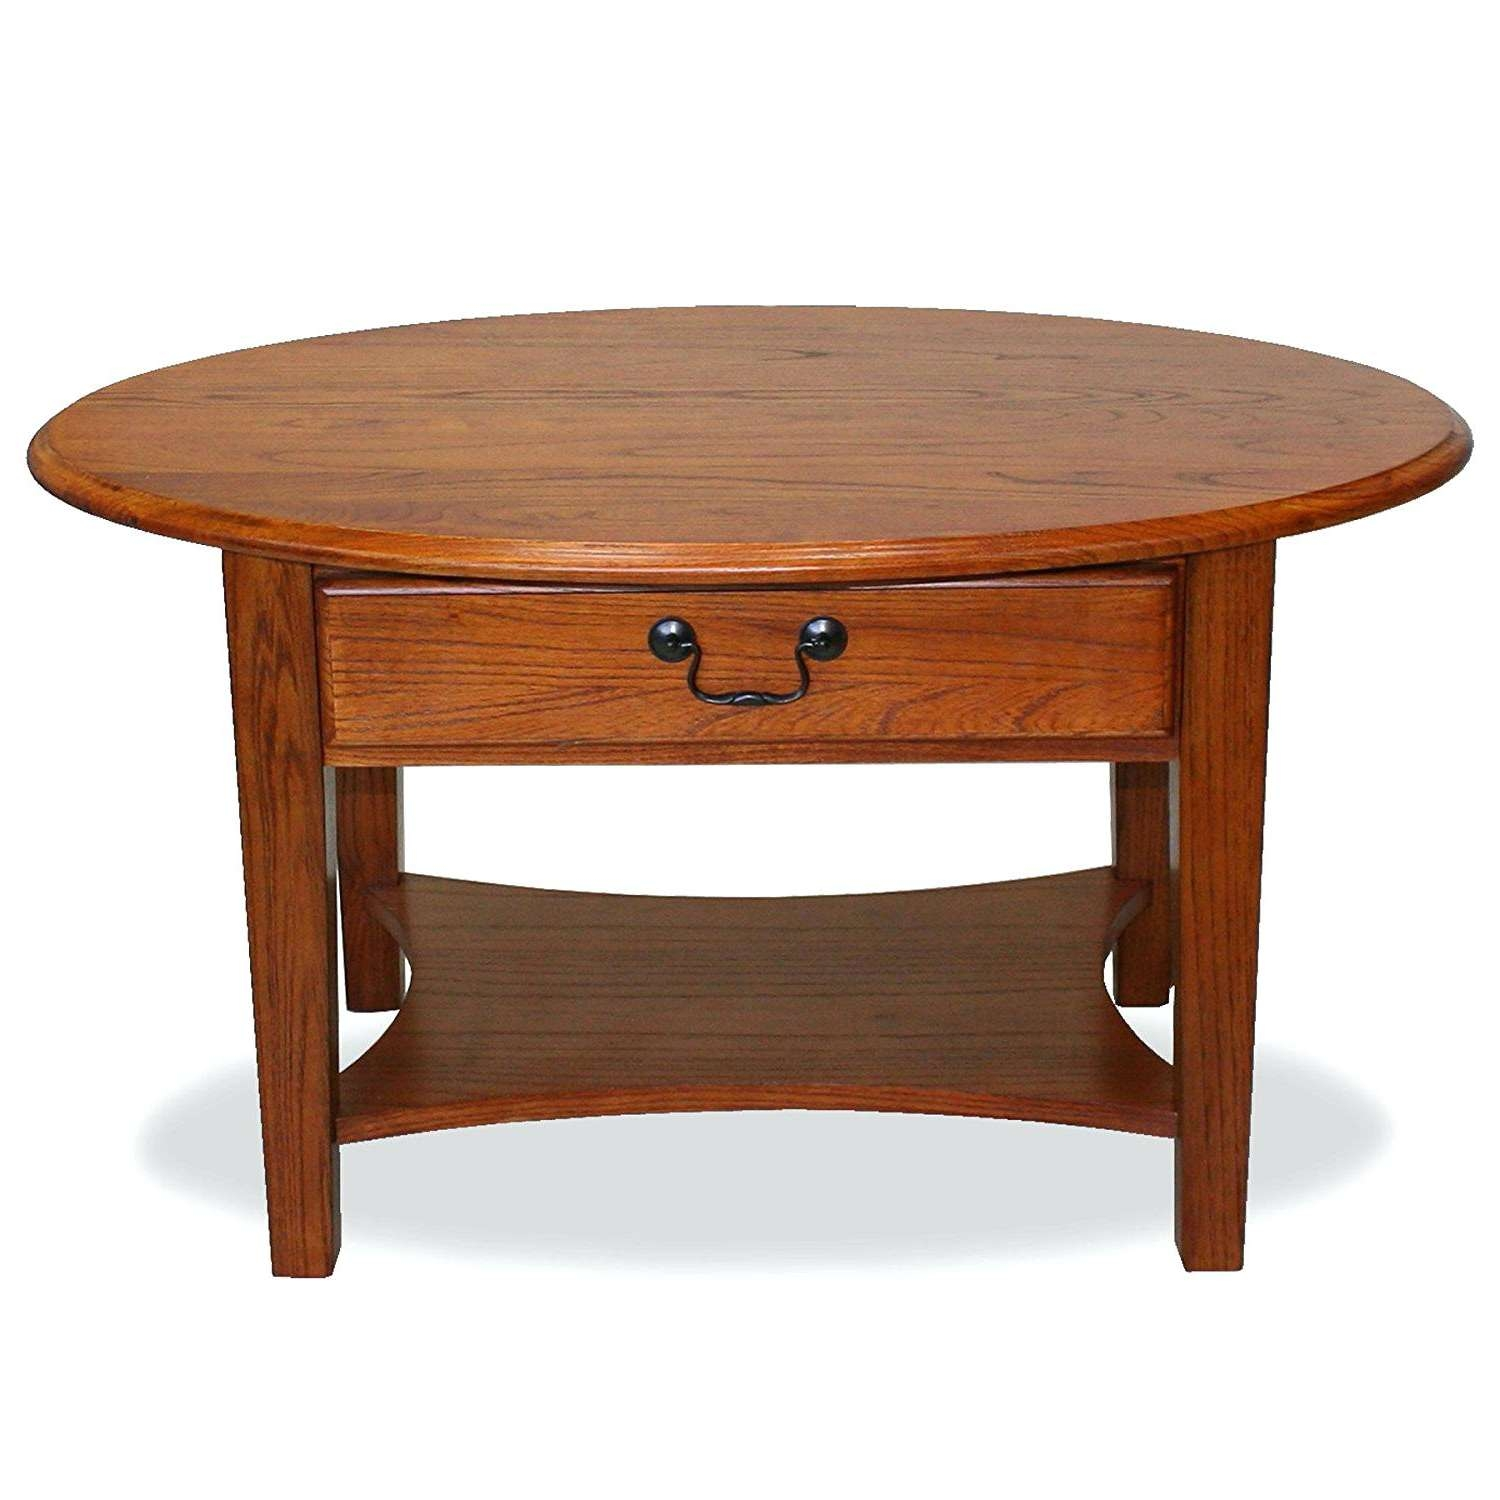 Small Dark Wood Coffee Tables 20 Collection Of Dark Wood Square Coffee Tables